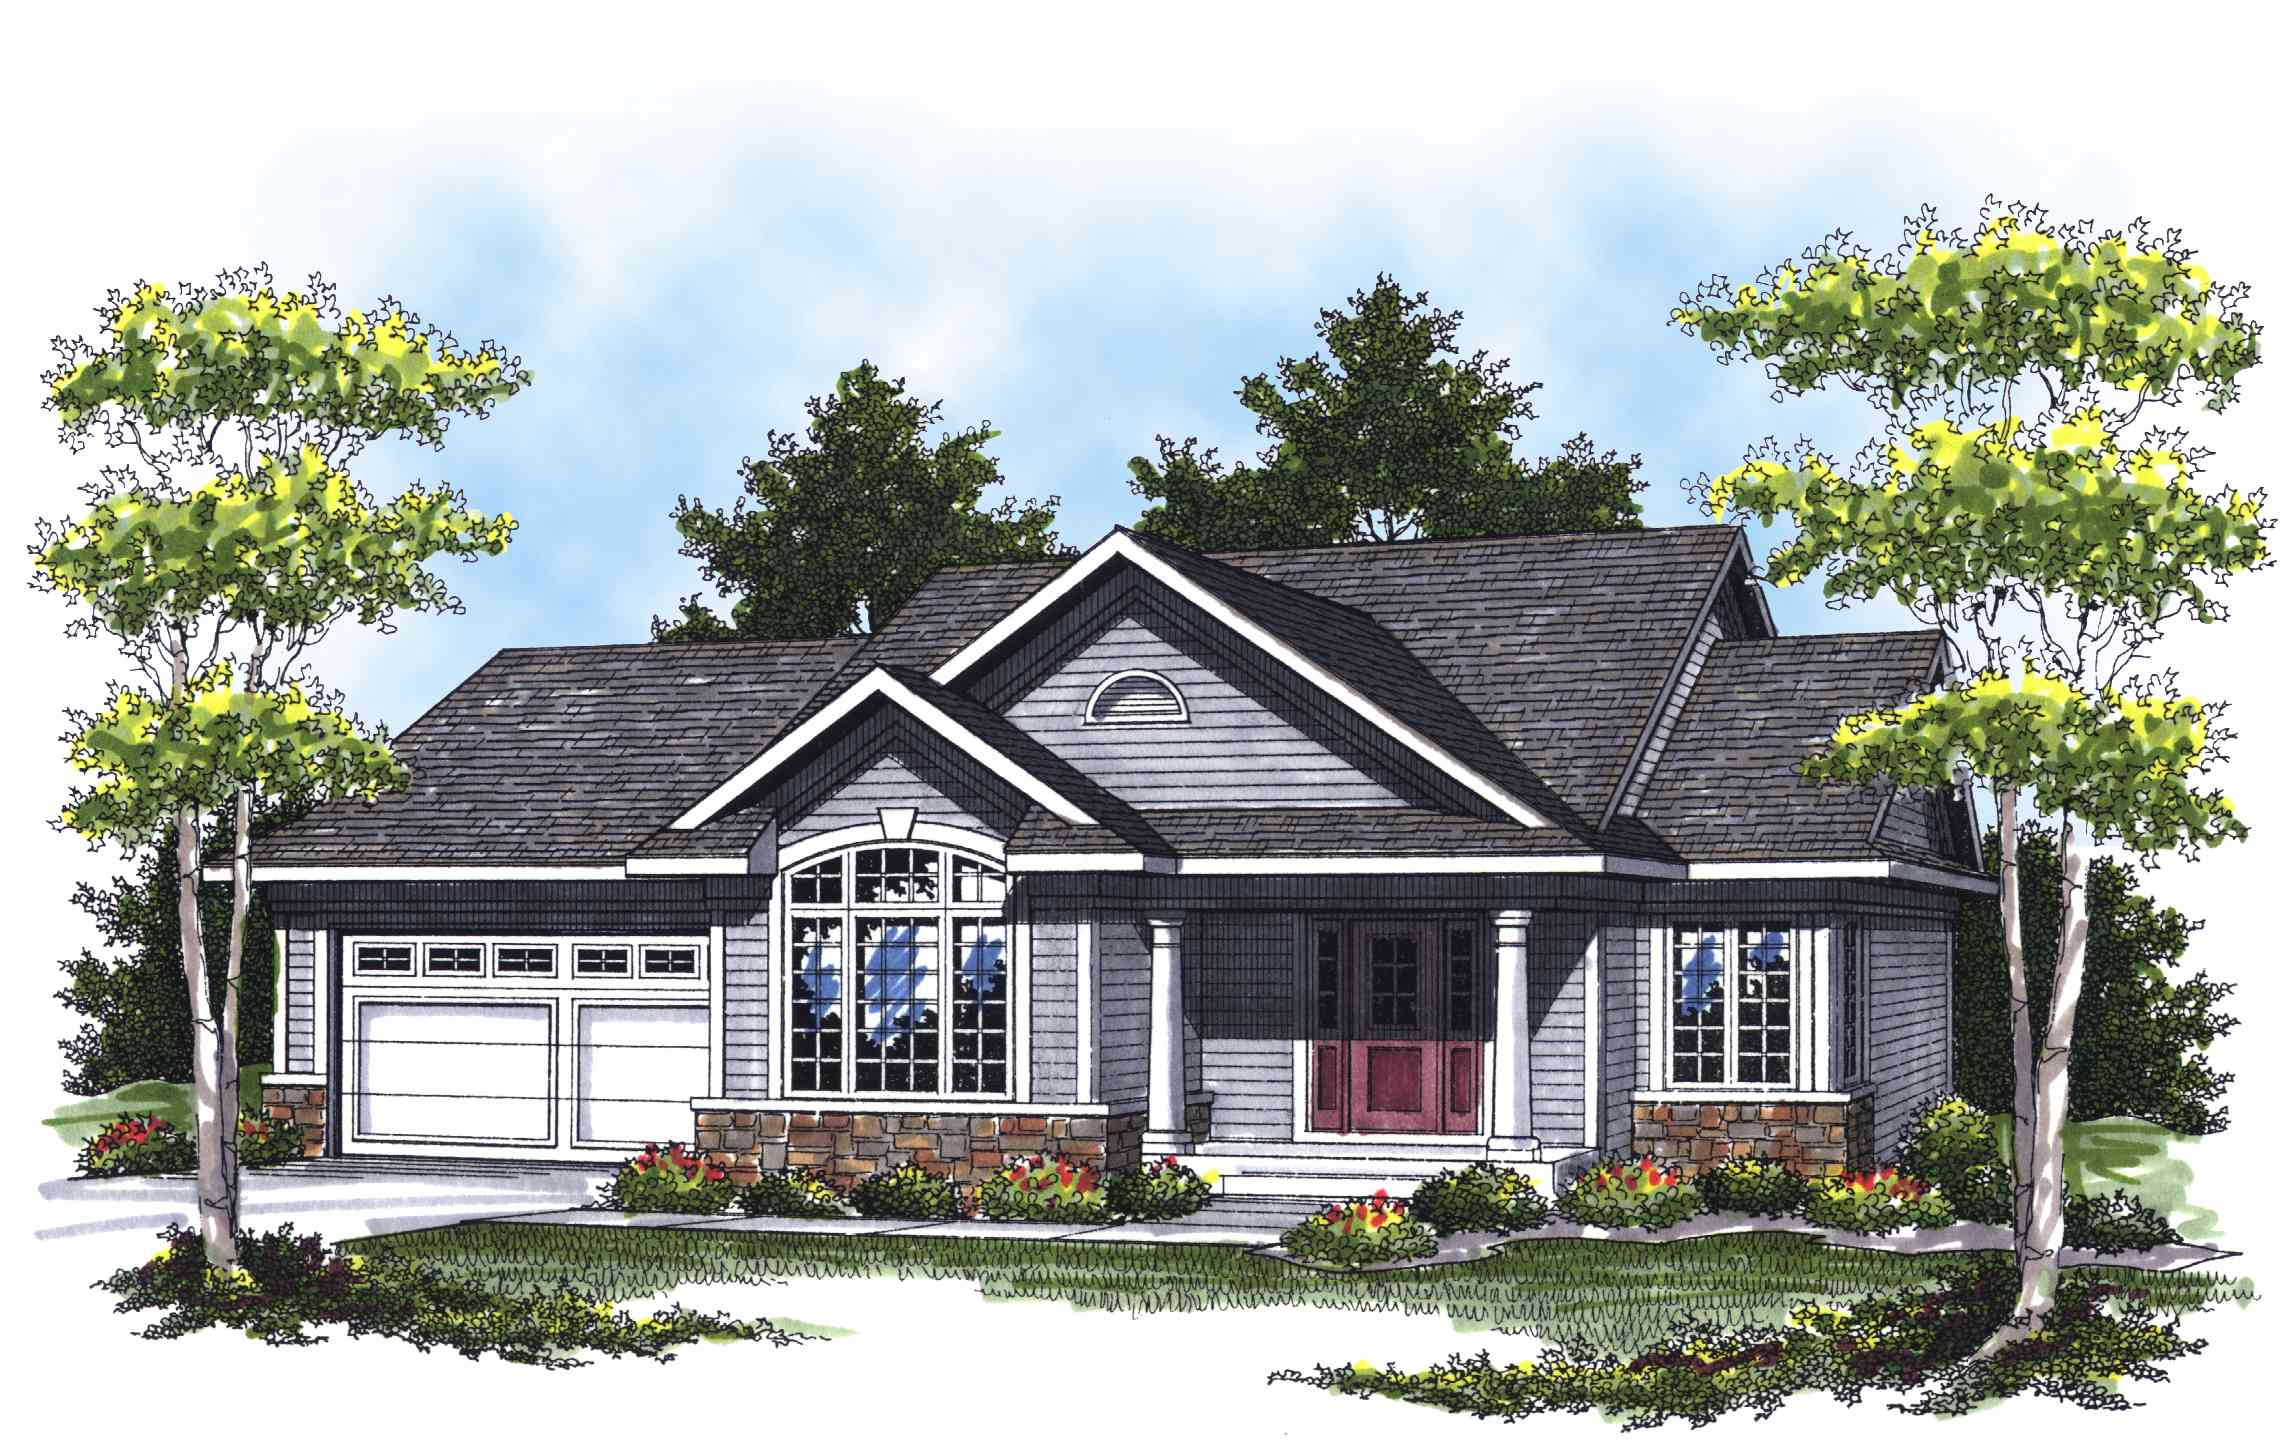 Lovely ranch with cathedral ceilings 89284ah for Vaulted ceiling house plans